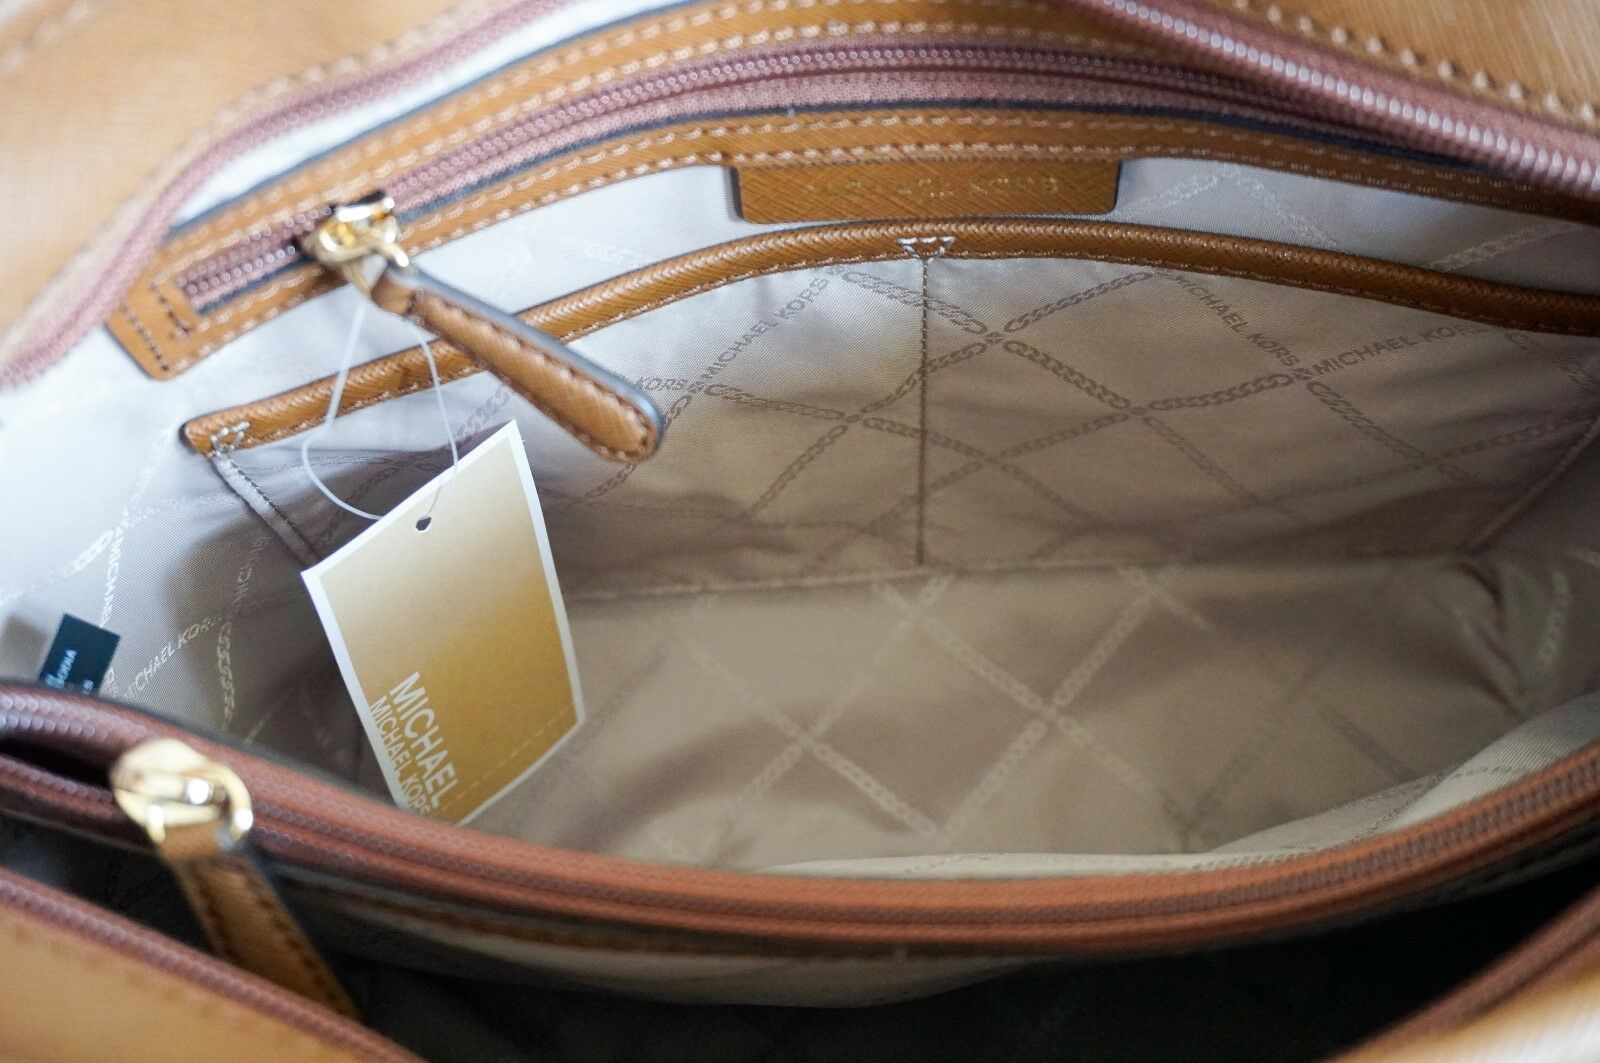 2a23f319991d MICHAEL KORS JET SET ITEM MEDIUM TOP ZIP SNAP POCKET TOTE SAFFIANO LEATHER  BROWN